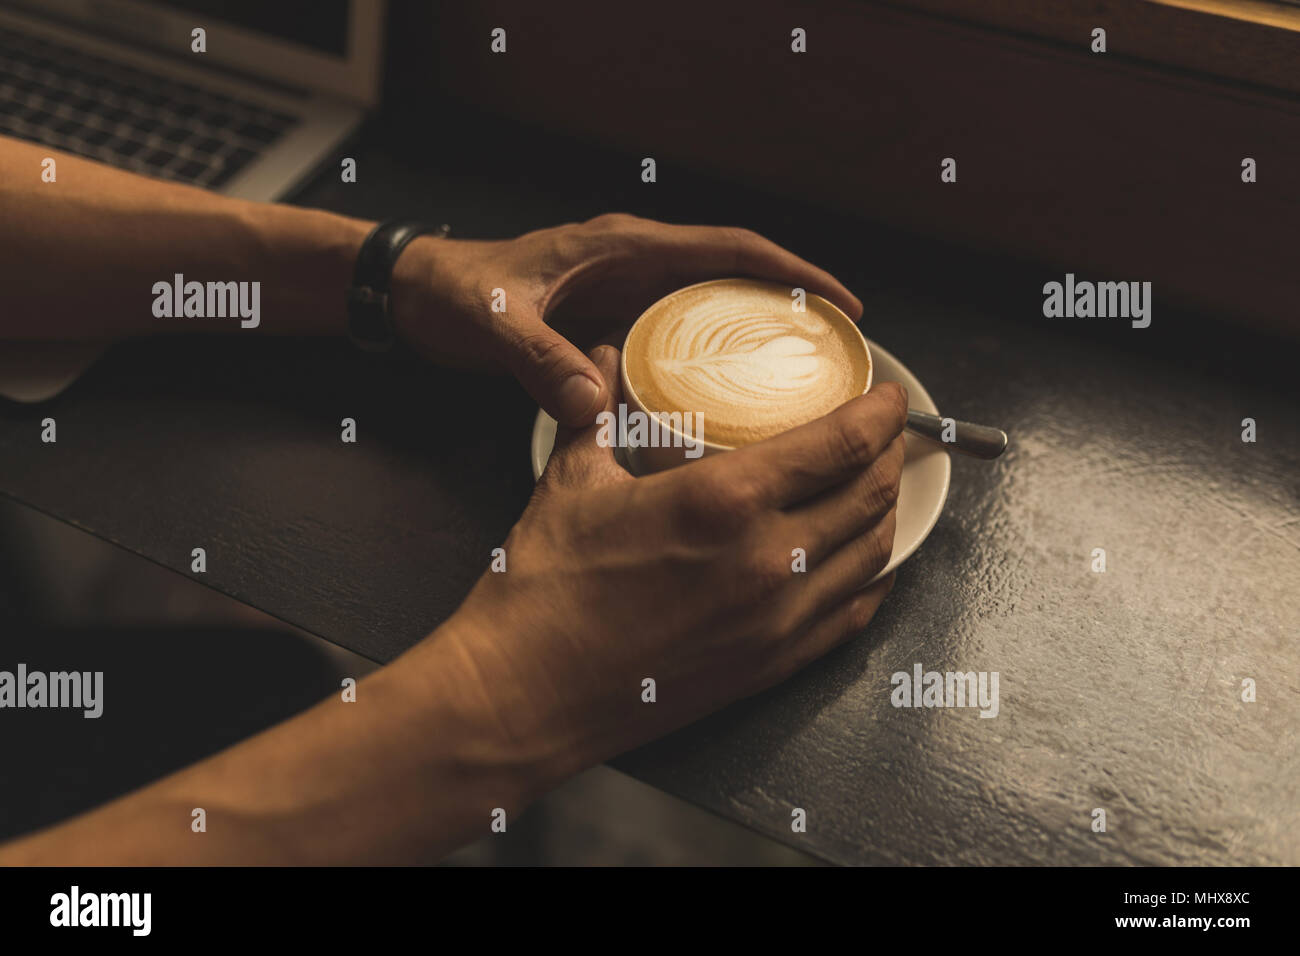 Businessman holding coffee cup in the cafe - Stock Image